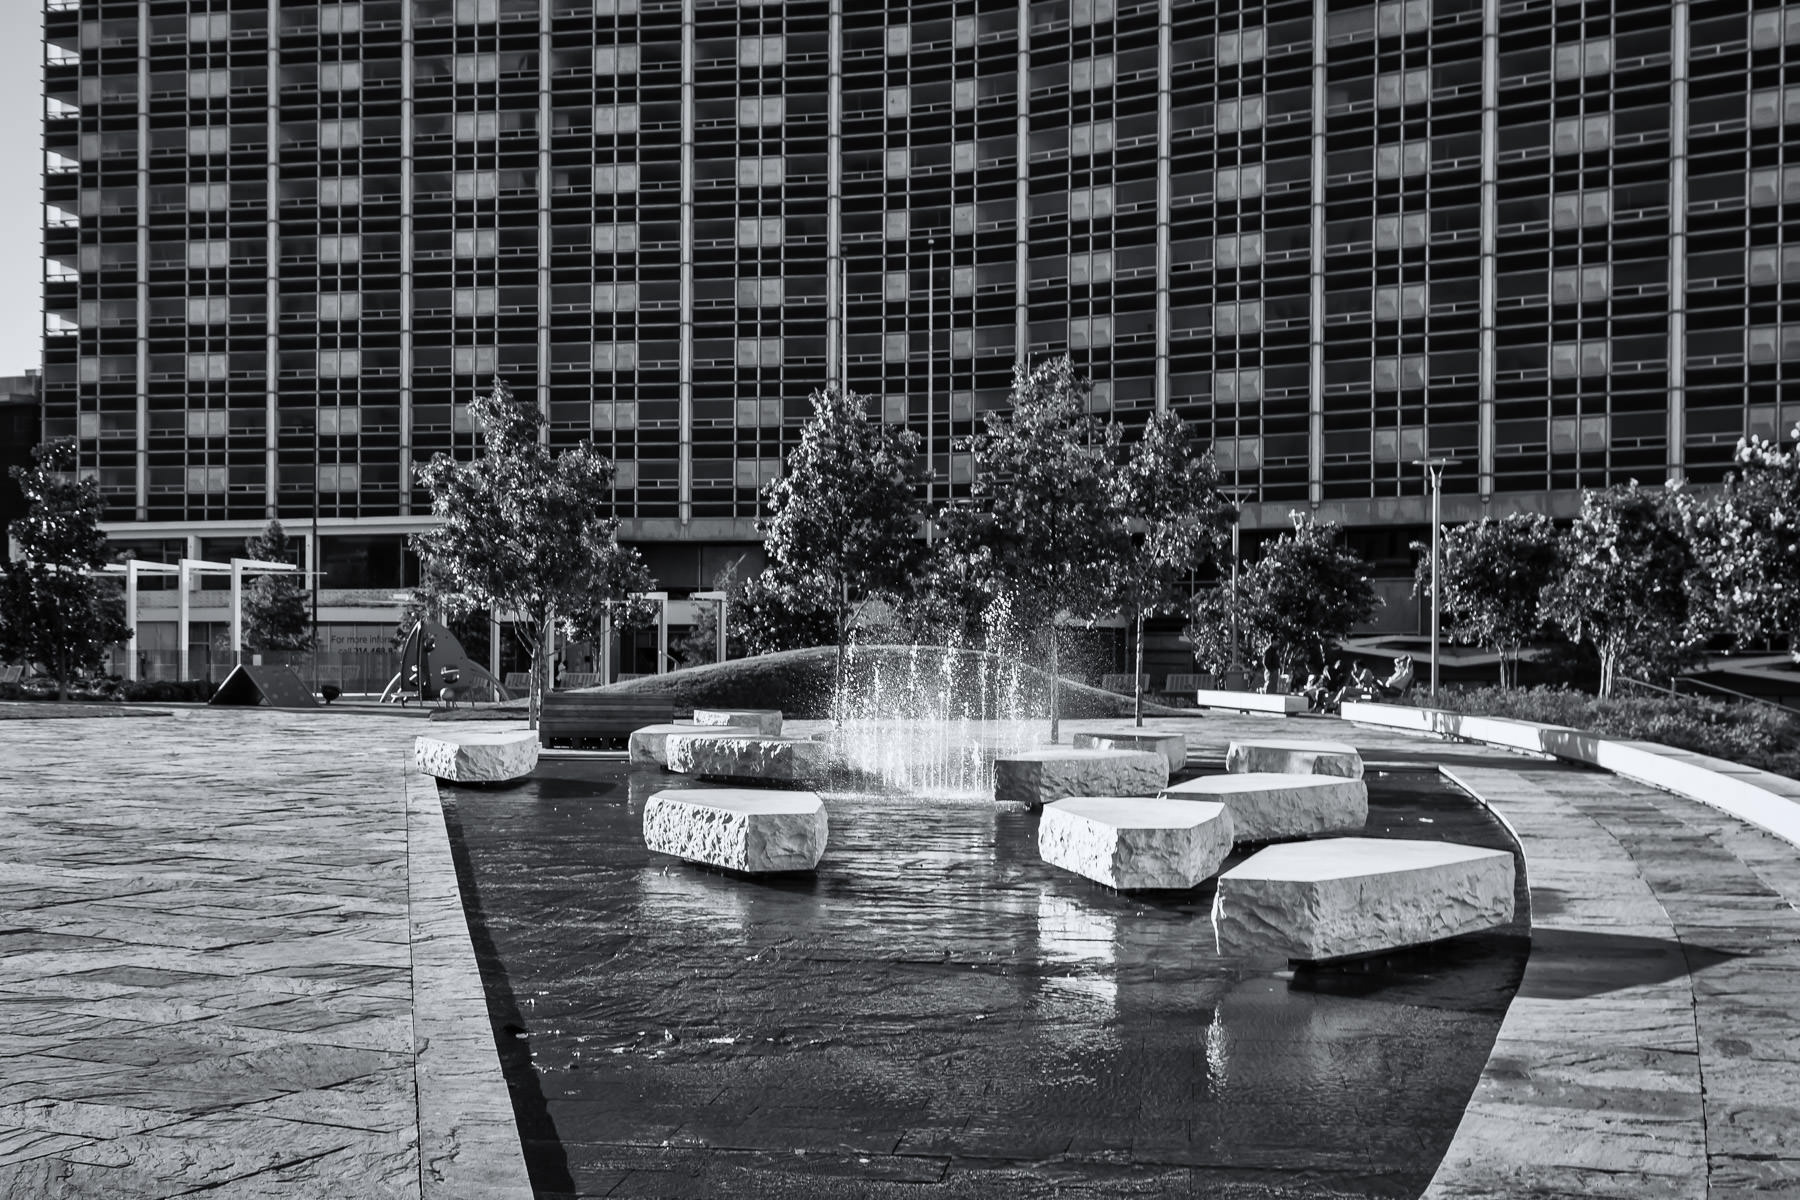 The long-abandoned yet soon-to-be-reborn Dallas Grand Hotel (formerly known as the Statler Hilton) looms over Main Street Garden in Downtown Dallas.